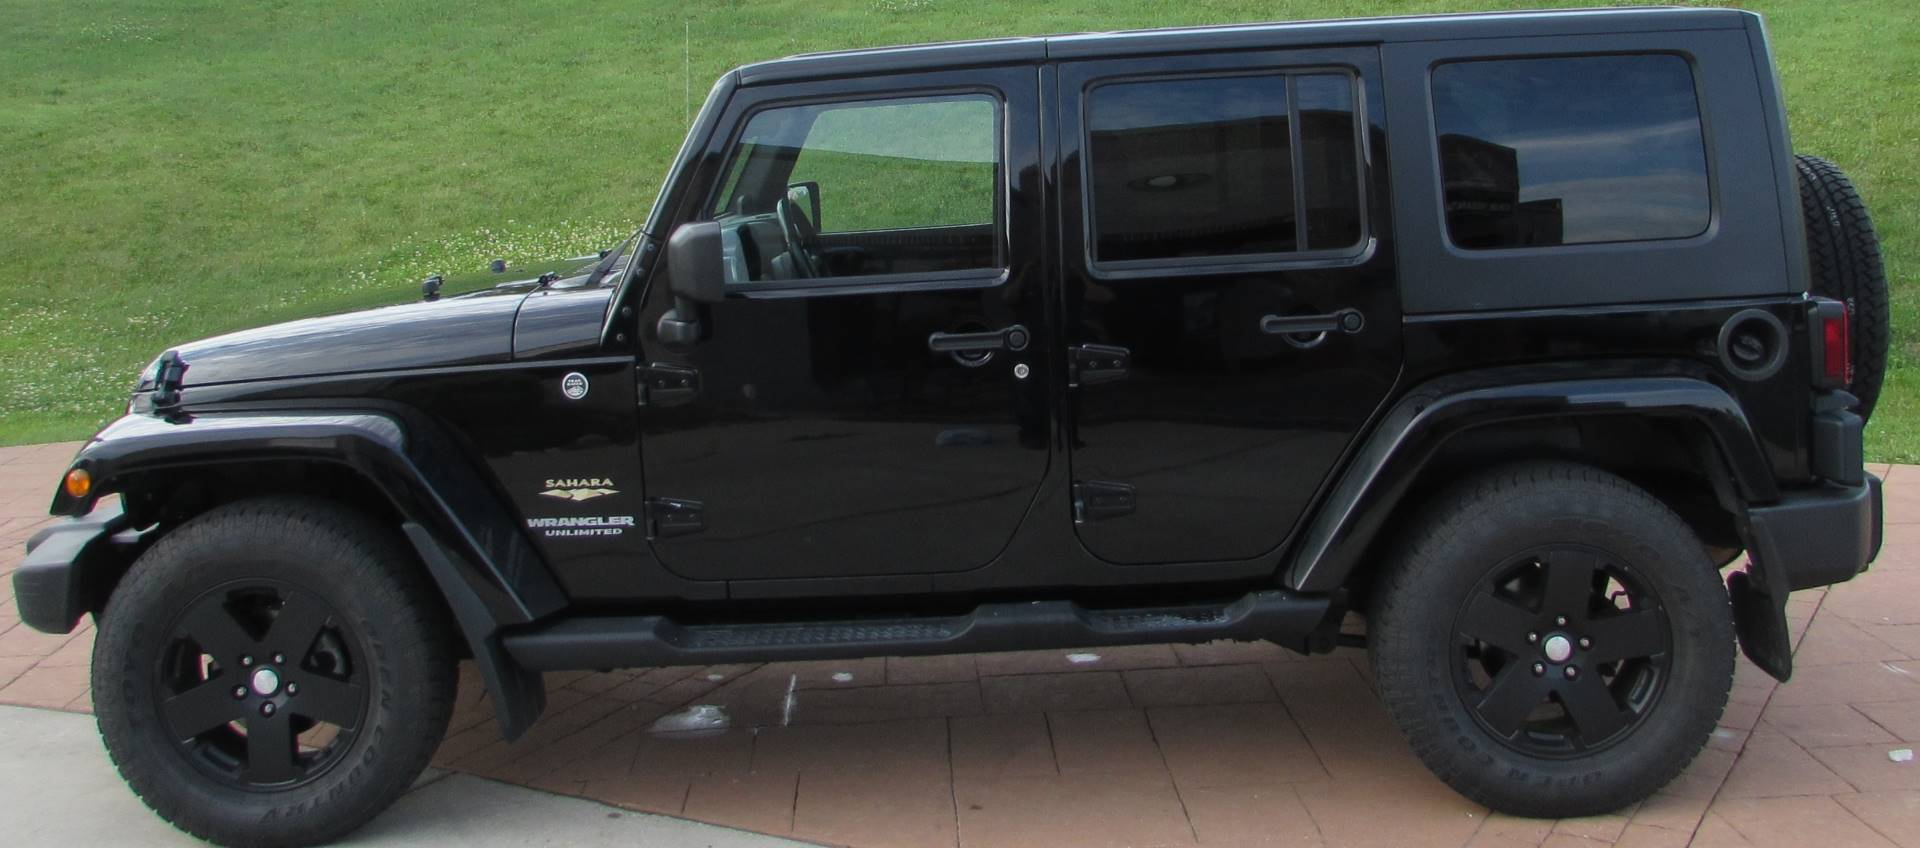 2009 Jeep Wrangler Sahara Limited in Big Bend, Wisconsin - Photo 11